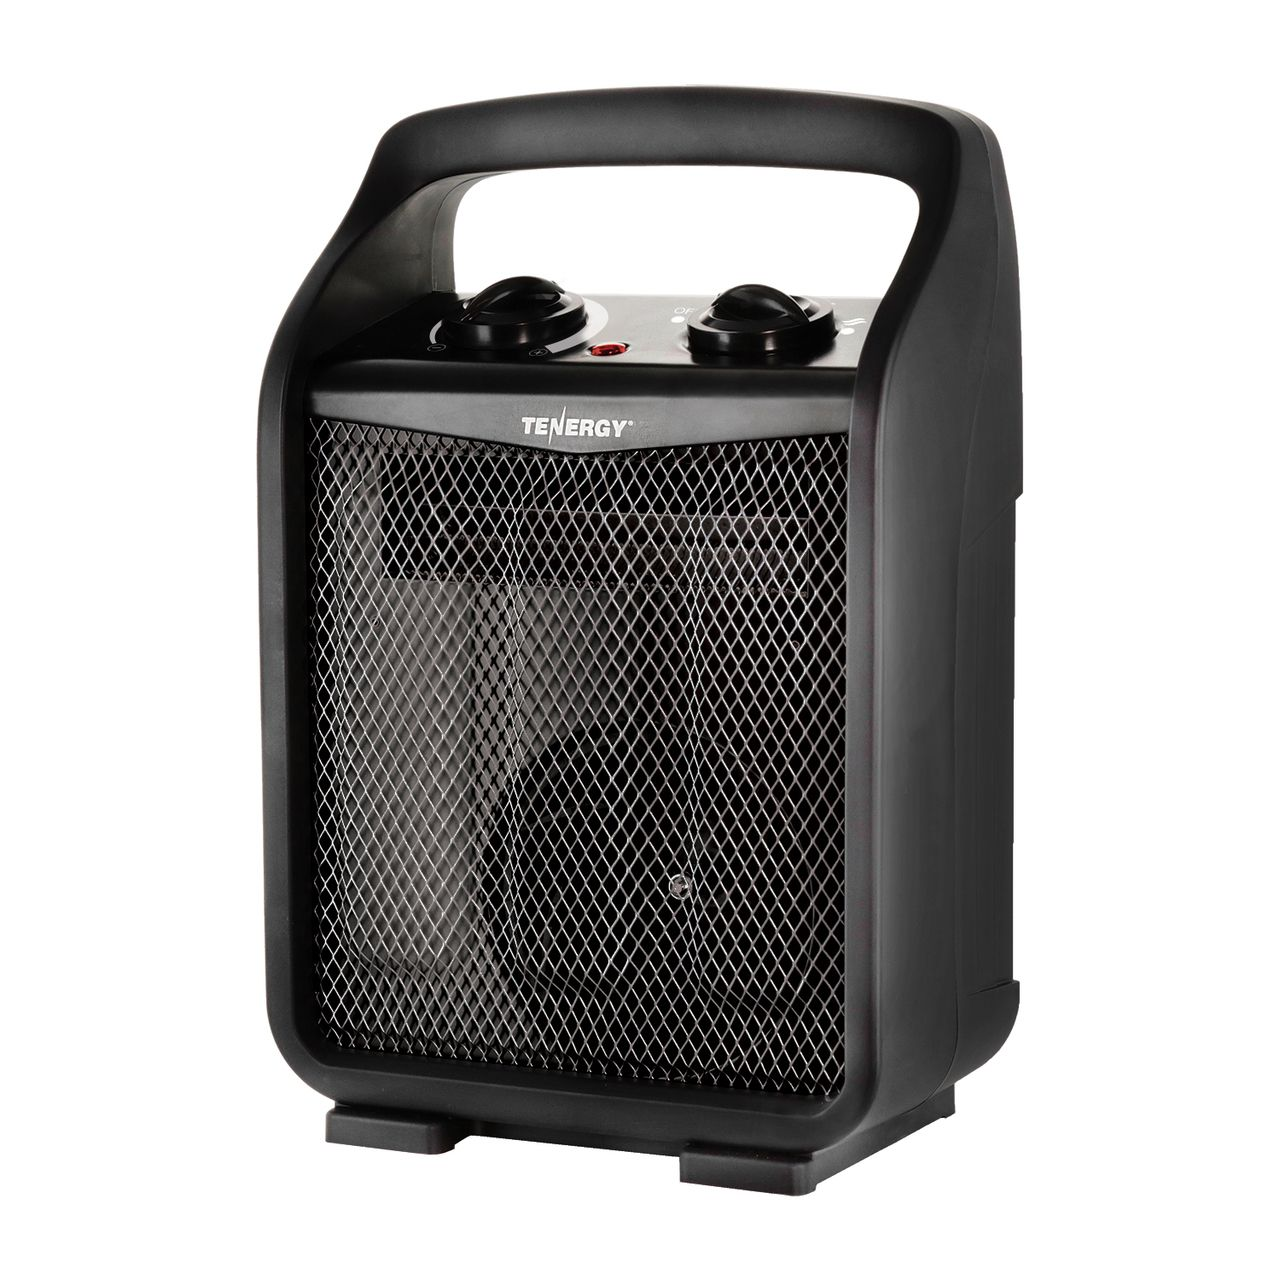 1500W Portable Space Heater in 2019 Portable space